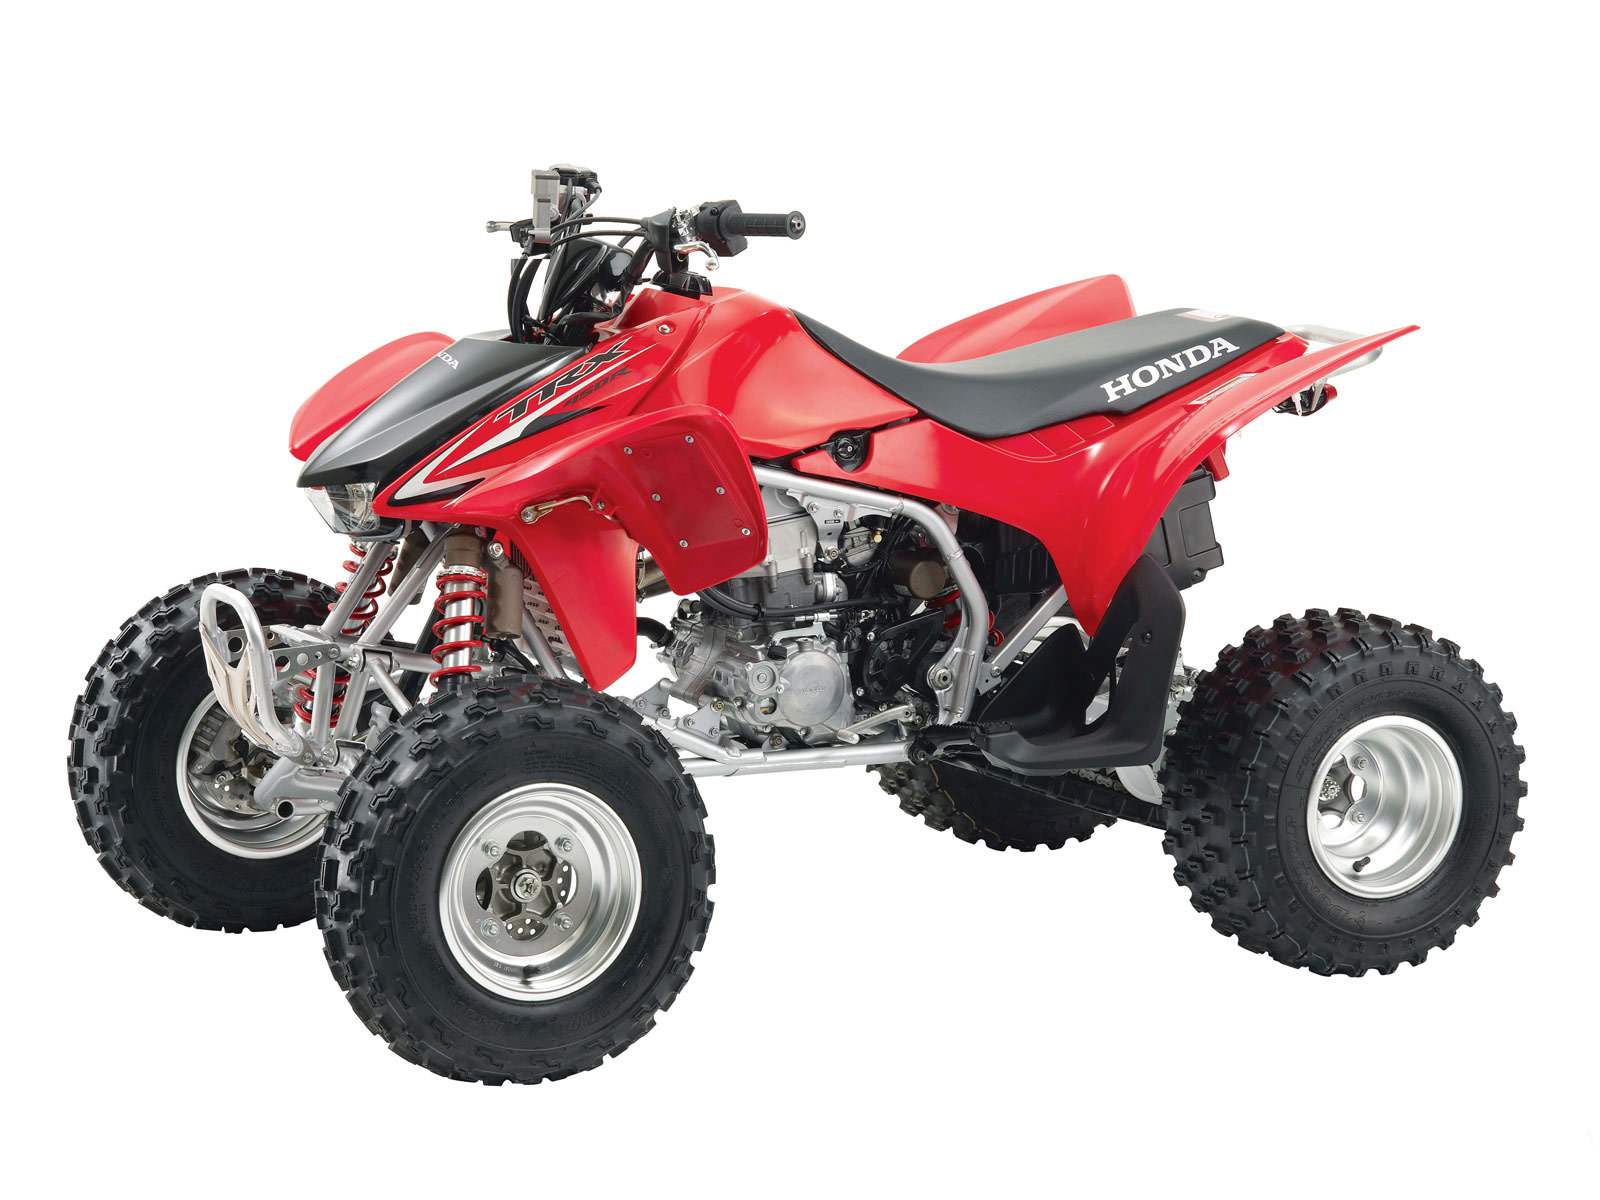 2009 honda trx450er atv accident lawyers information. Black Bedroom Furniture Sets. Home Design Ideas